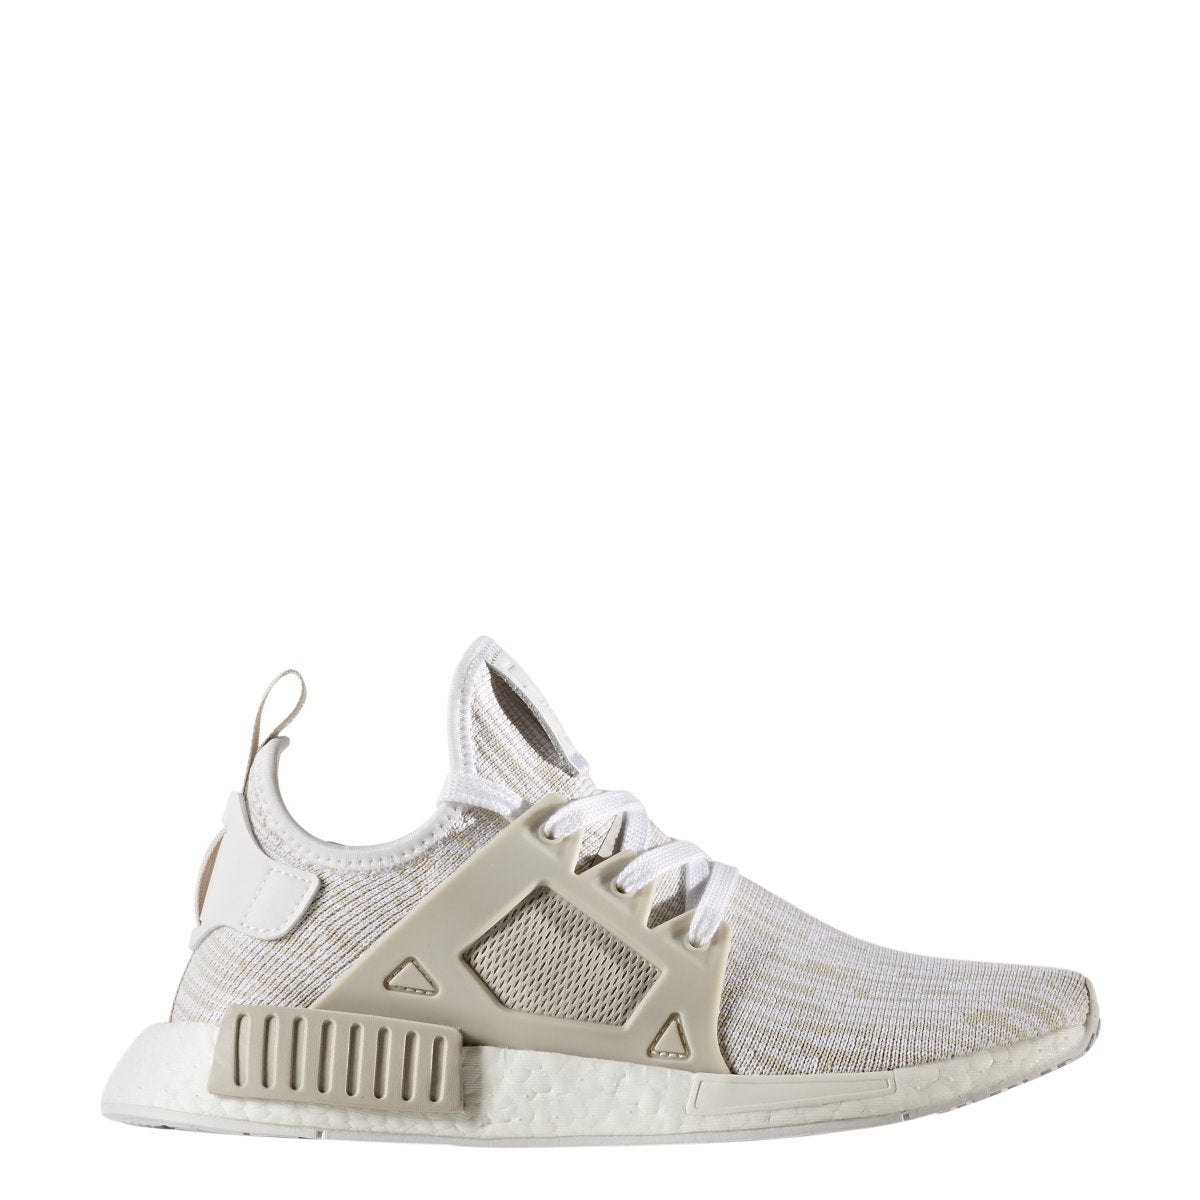 [BB2369] Womens NMD_XR1 PK W